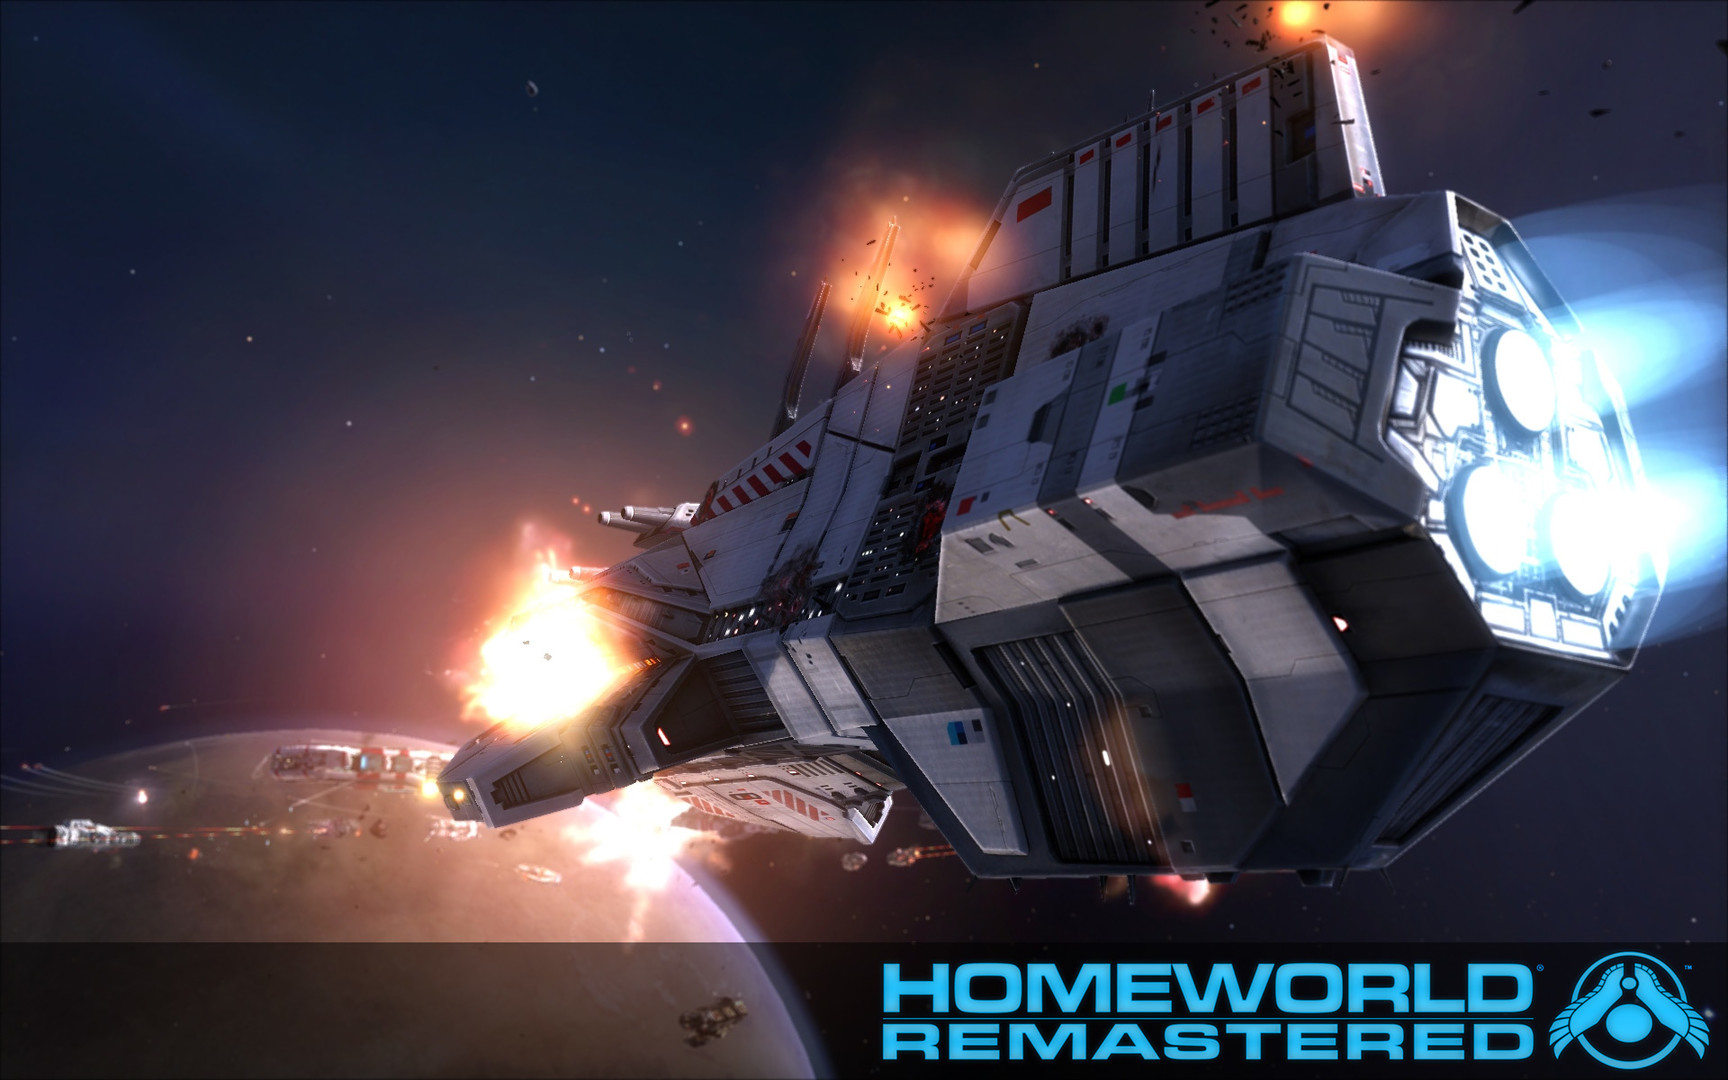 Homeworld Remastered Collection (Steam key/Region Free)